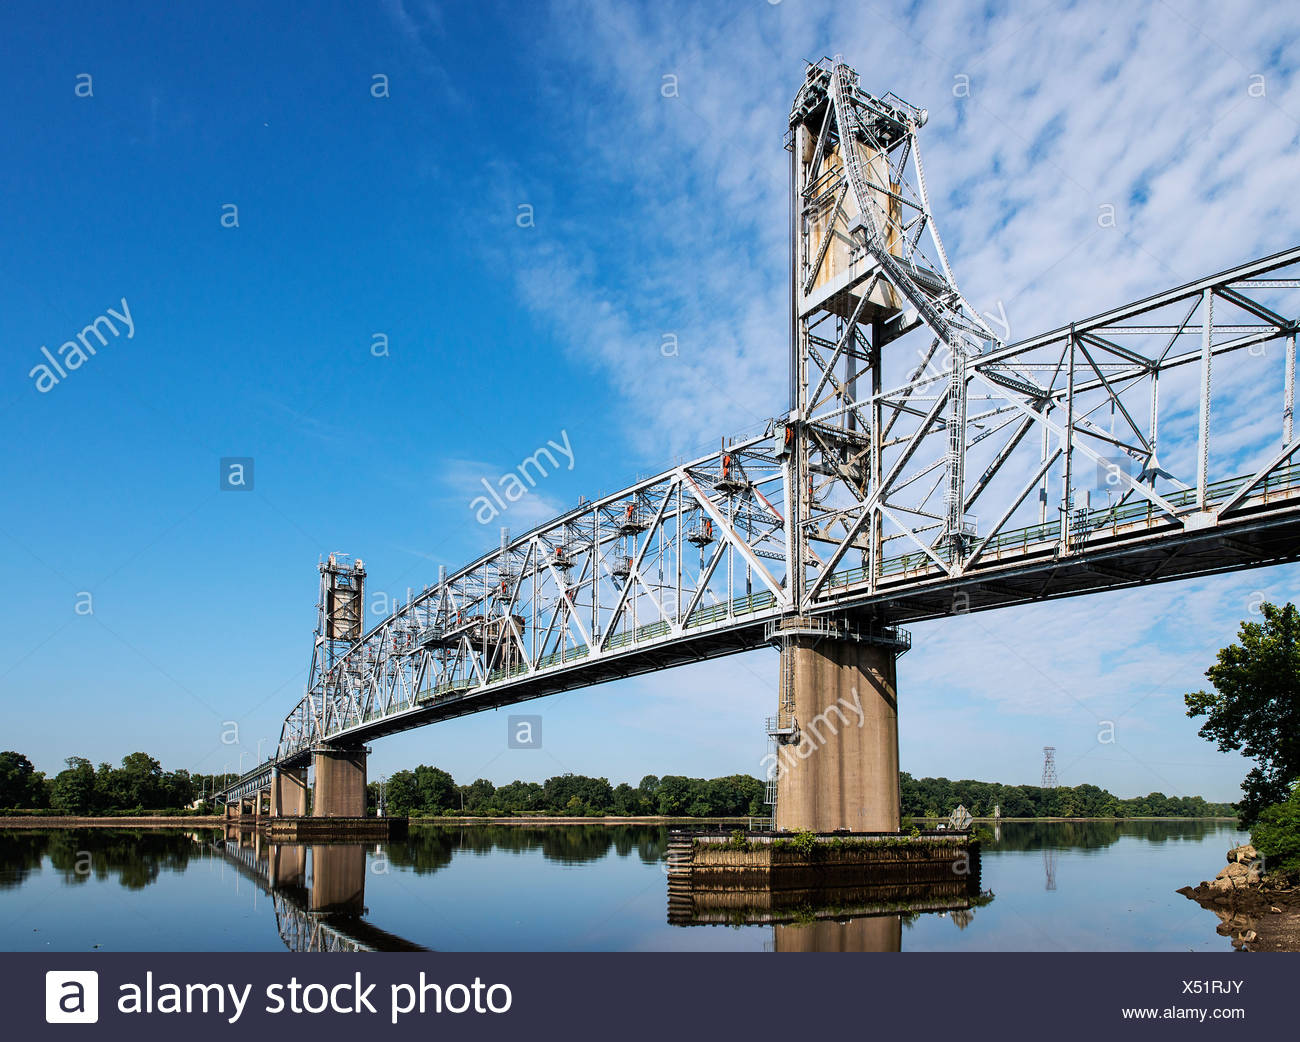 Burlington–Bristol Bridge, Burlington, New Jersey, USA - Stock Image